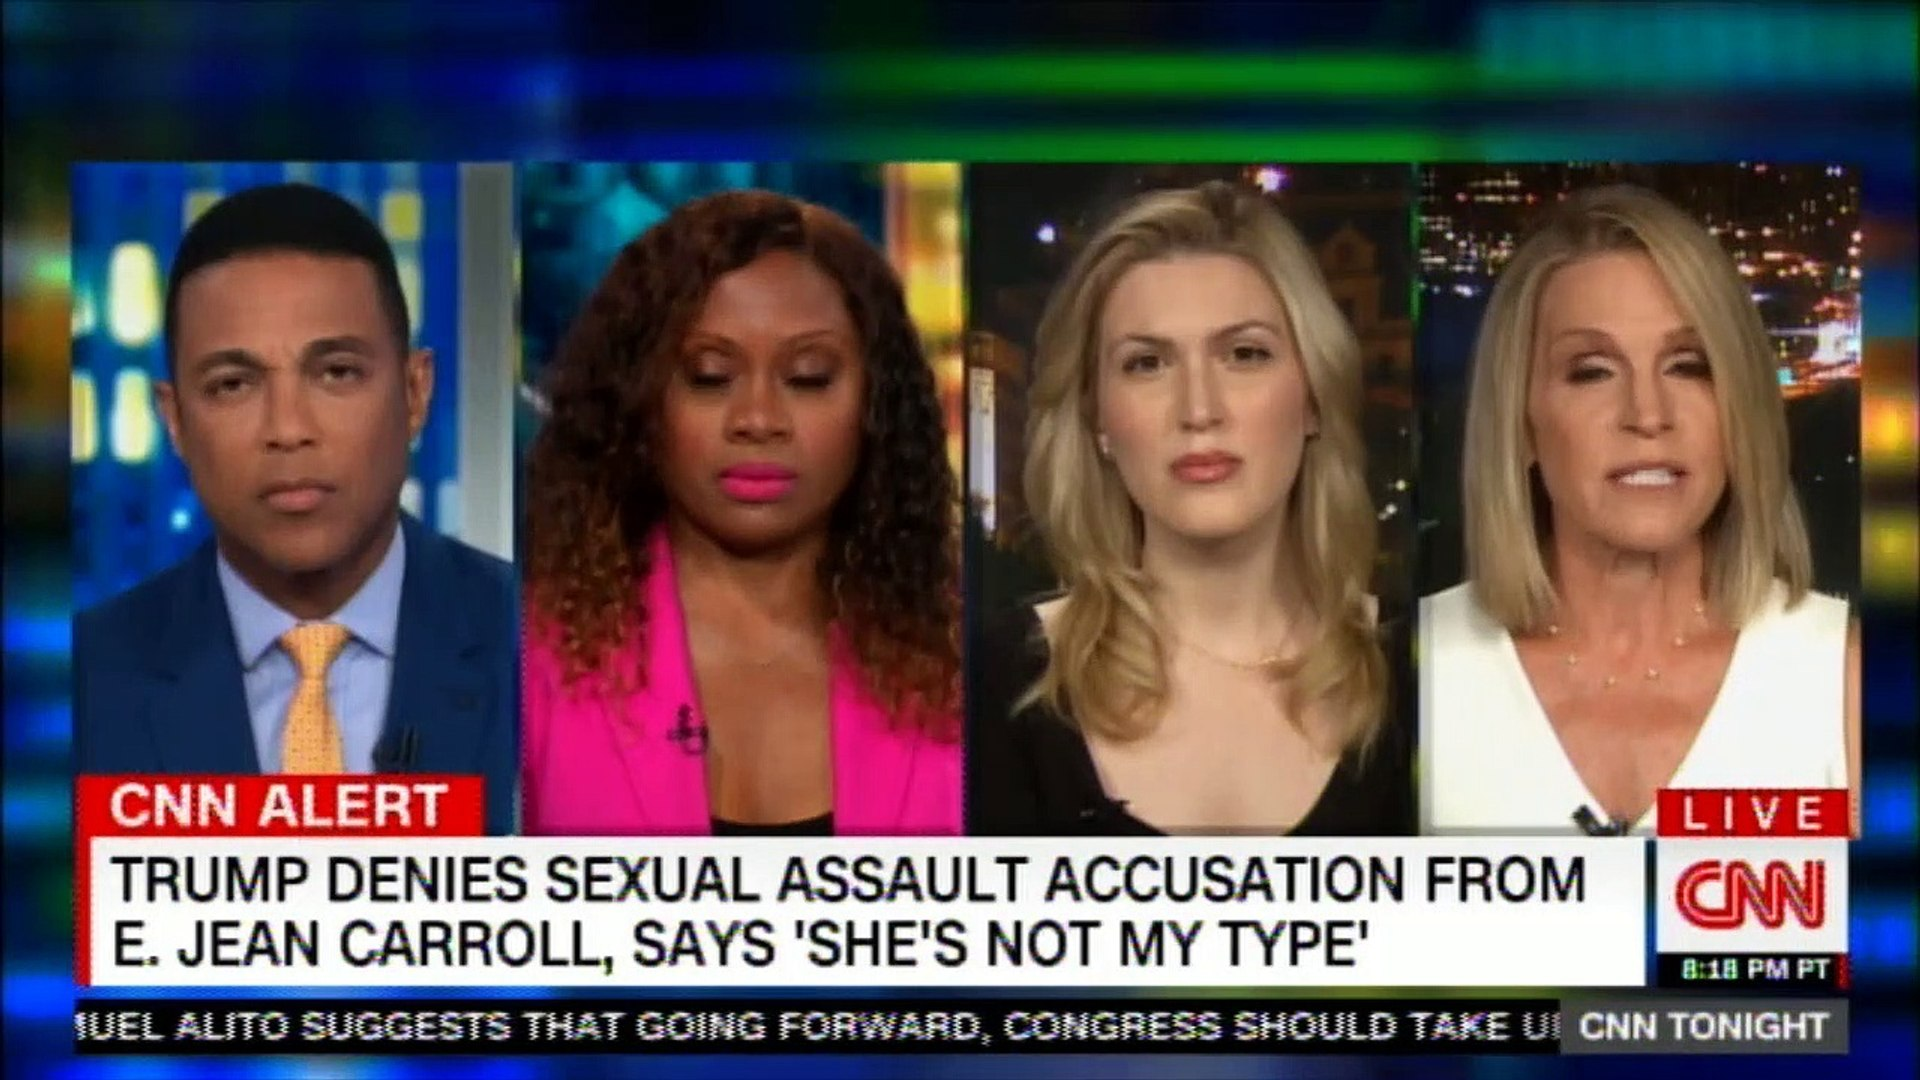 Panel on Trump denies sexual assault accusation from E. Jean Carroll, says 'She's not my t